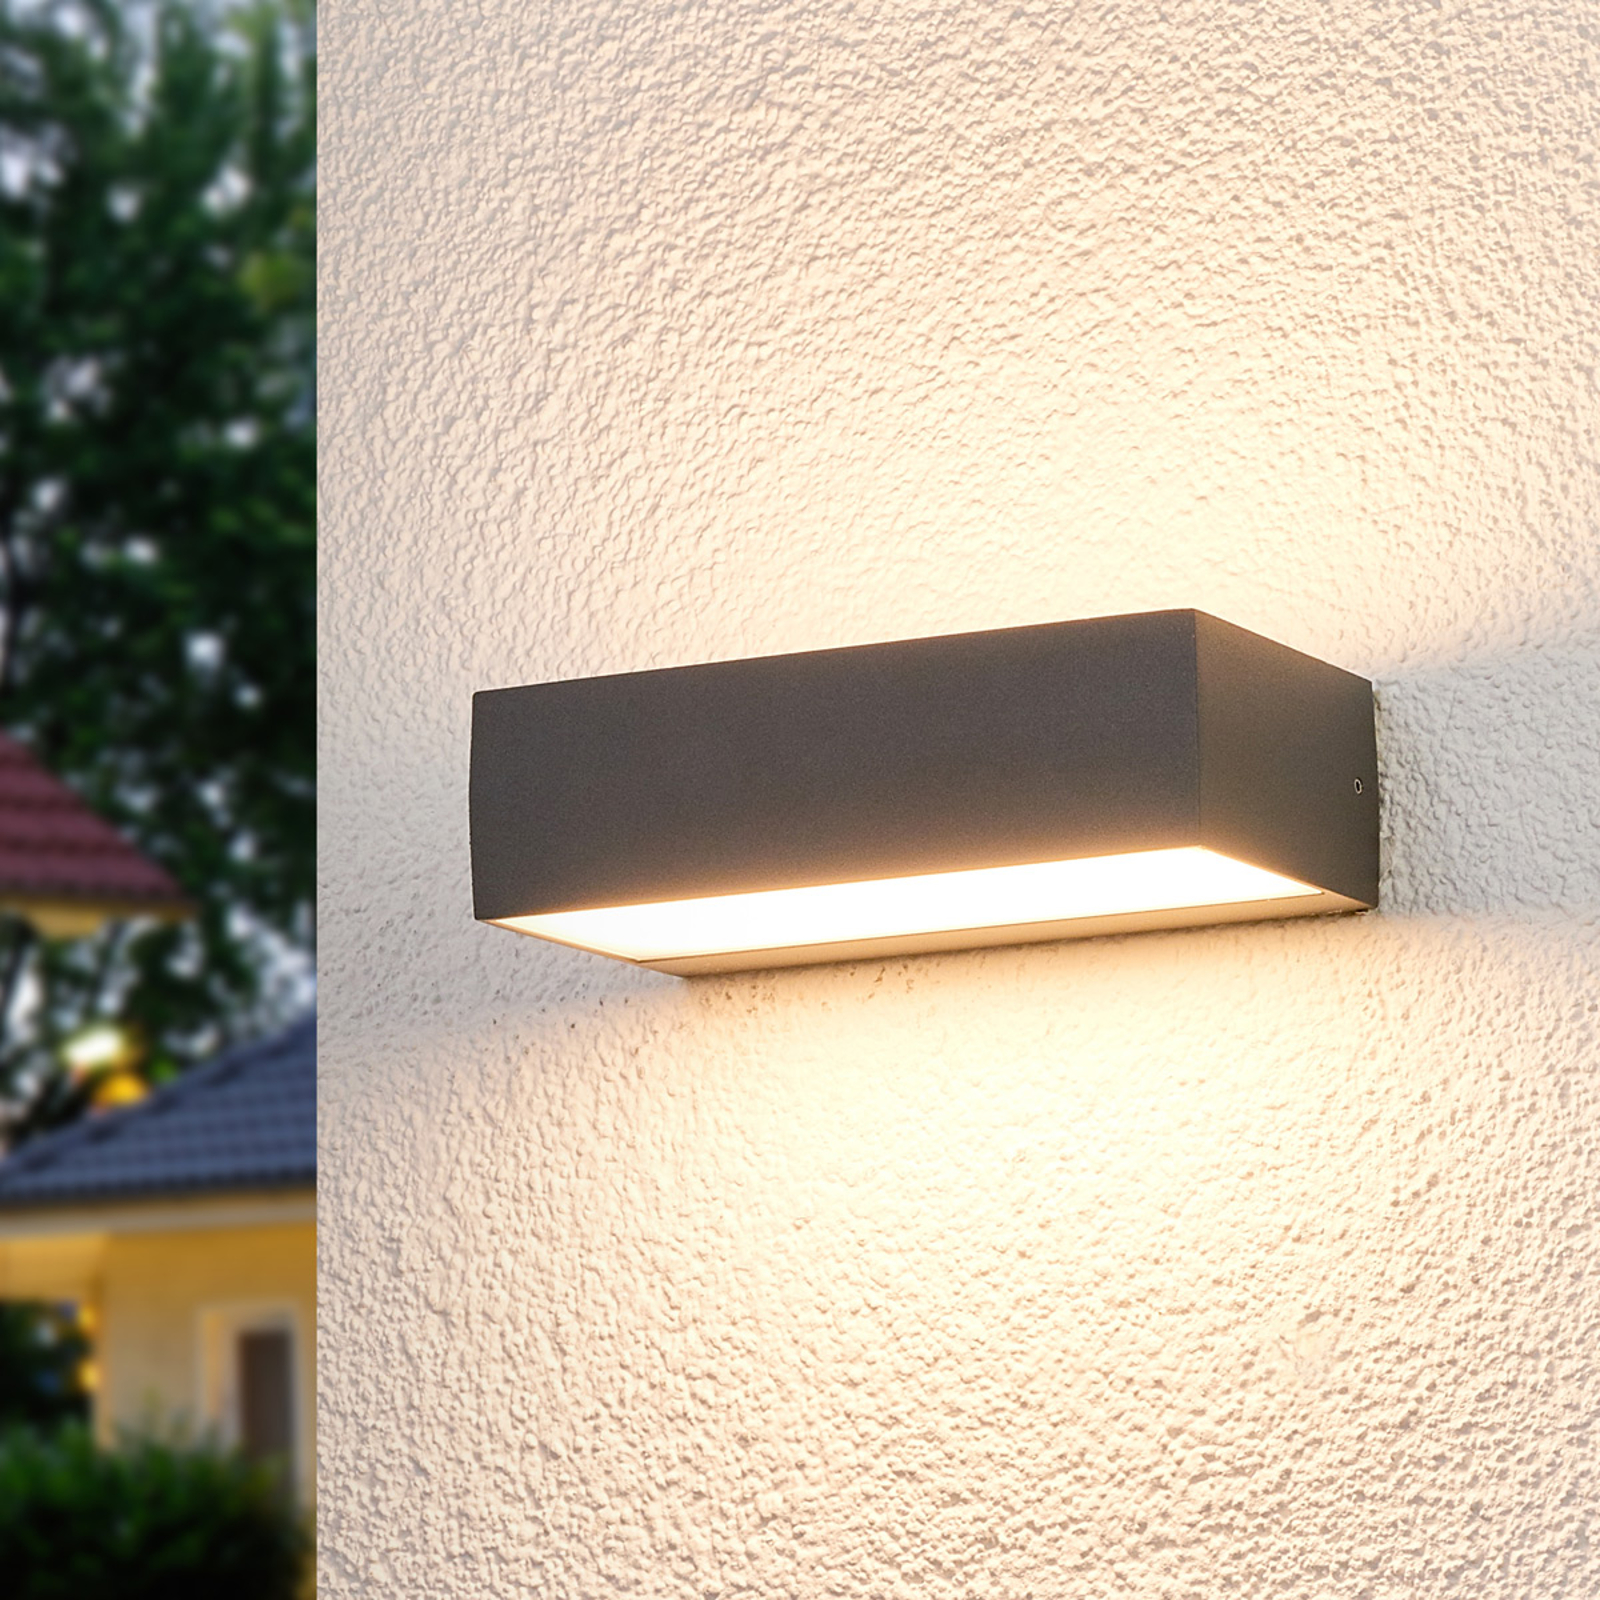 Lissi - LED outdoor wandlamp in hoekige vorm